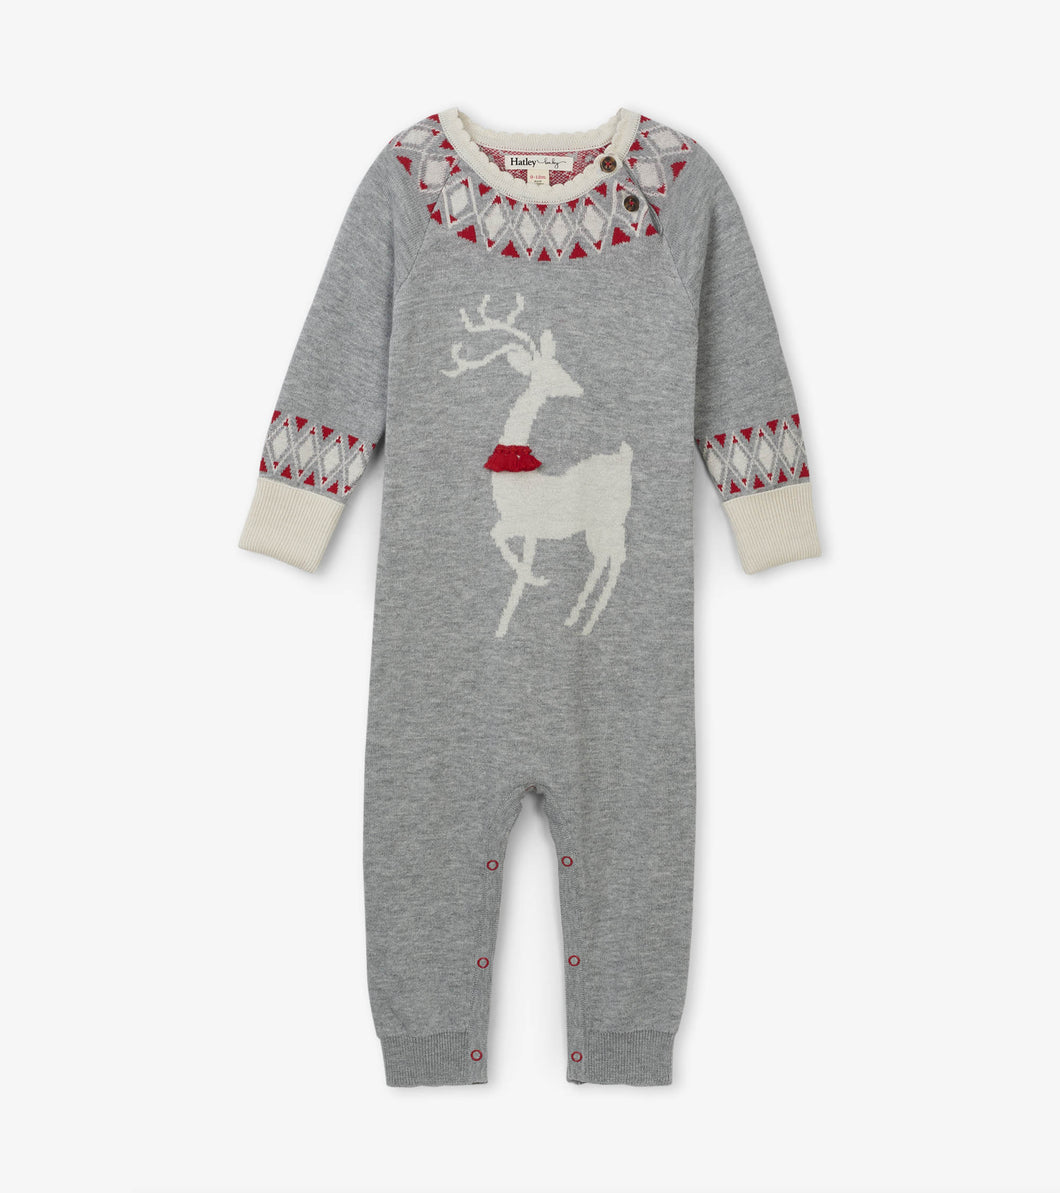 Mistletoe Deer Baby Sweater Romper